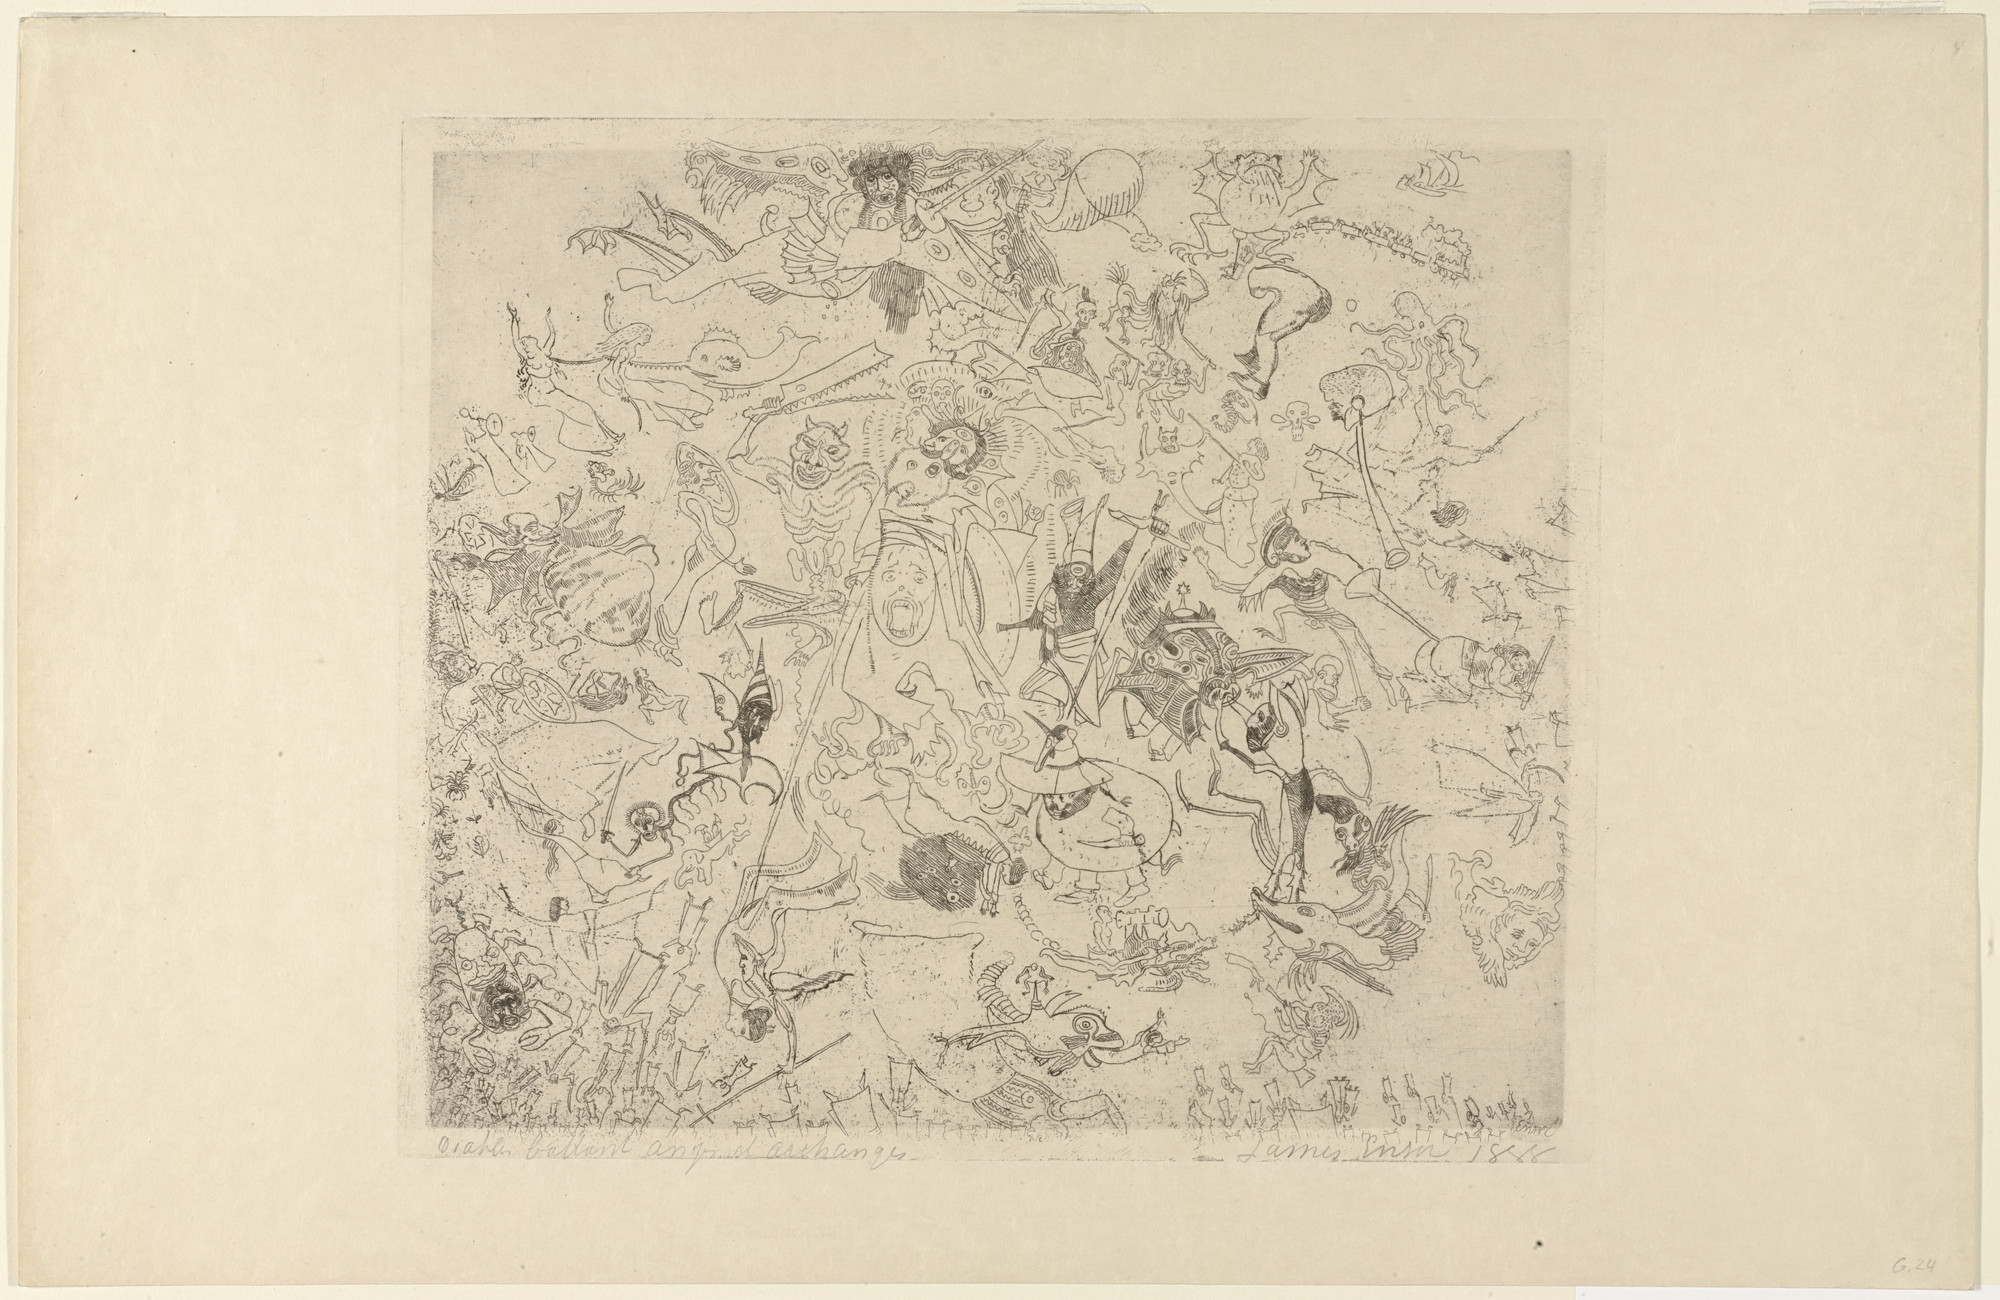 James Ensor. Devils Thrashing Angels and Archangels. 1888